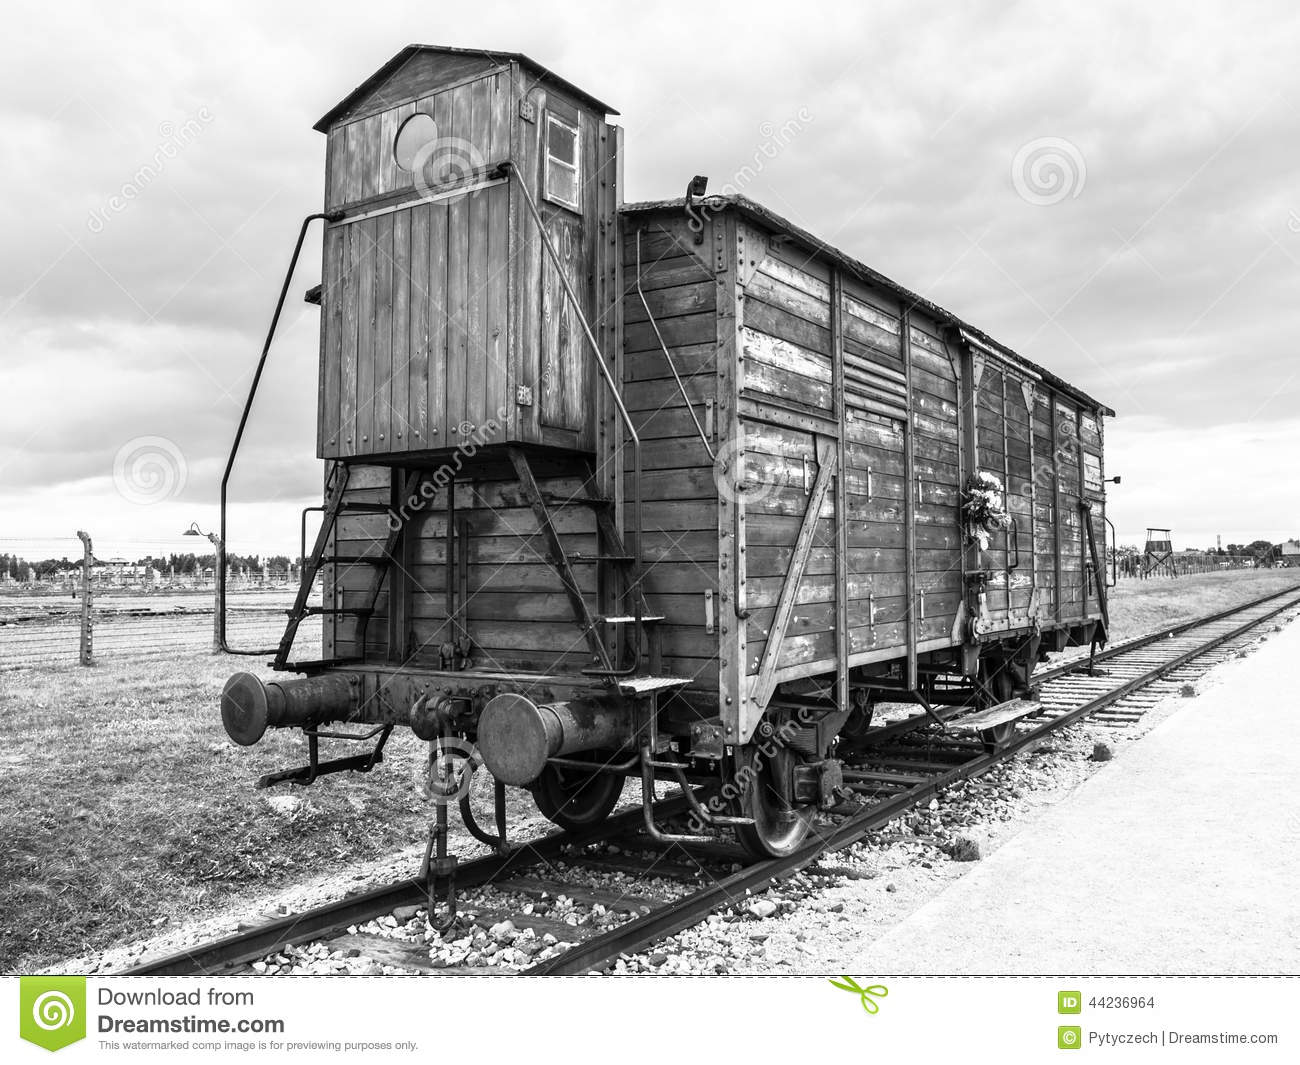 chapters about trains transporting jews to concentration camps A train in poland - jews durring in order to prevent both the transport of german troops to the russian front and the transport of jews to their internment and ultimate deaths the partisans described what awaited them in the nazi concentration camps, but the belgian jews refused to.